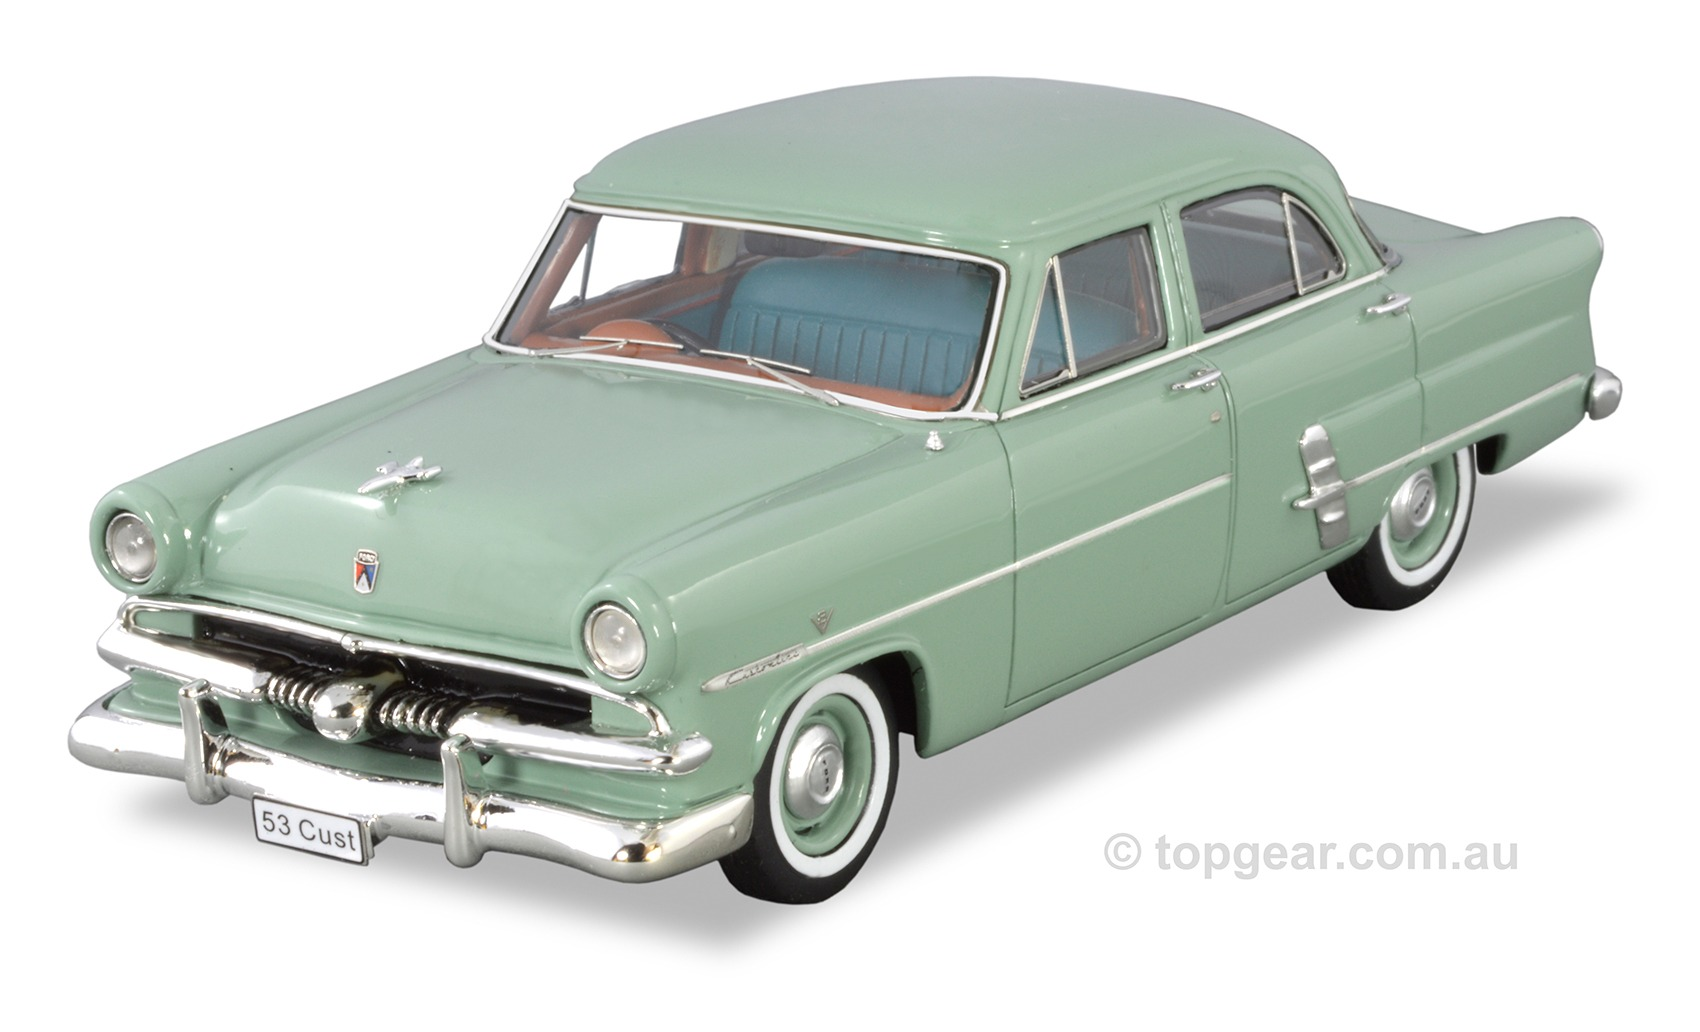 1953 Customline Sedan – Seafoam Green